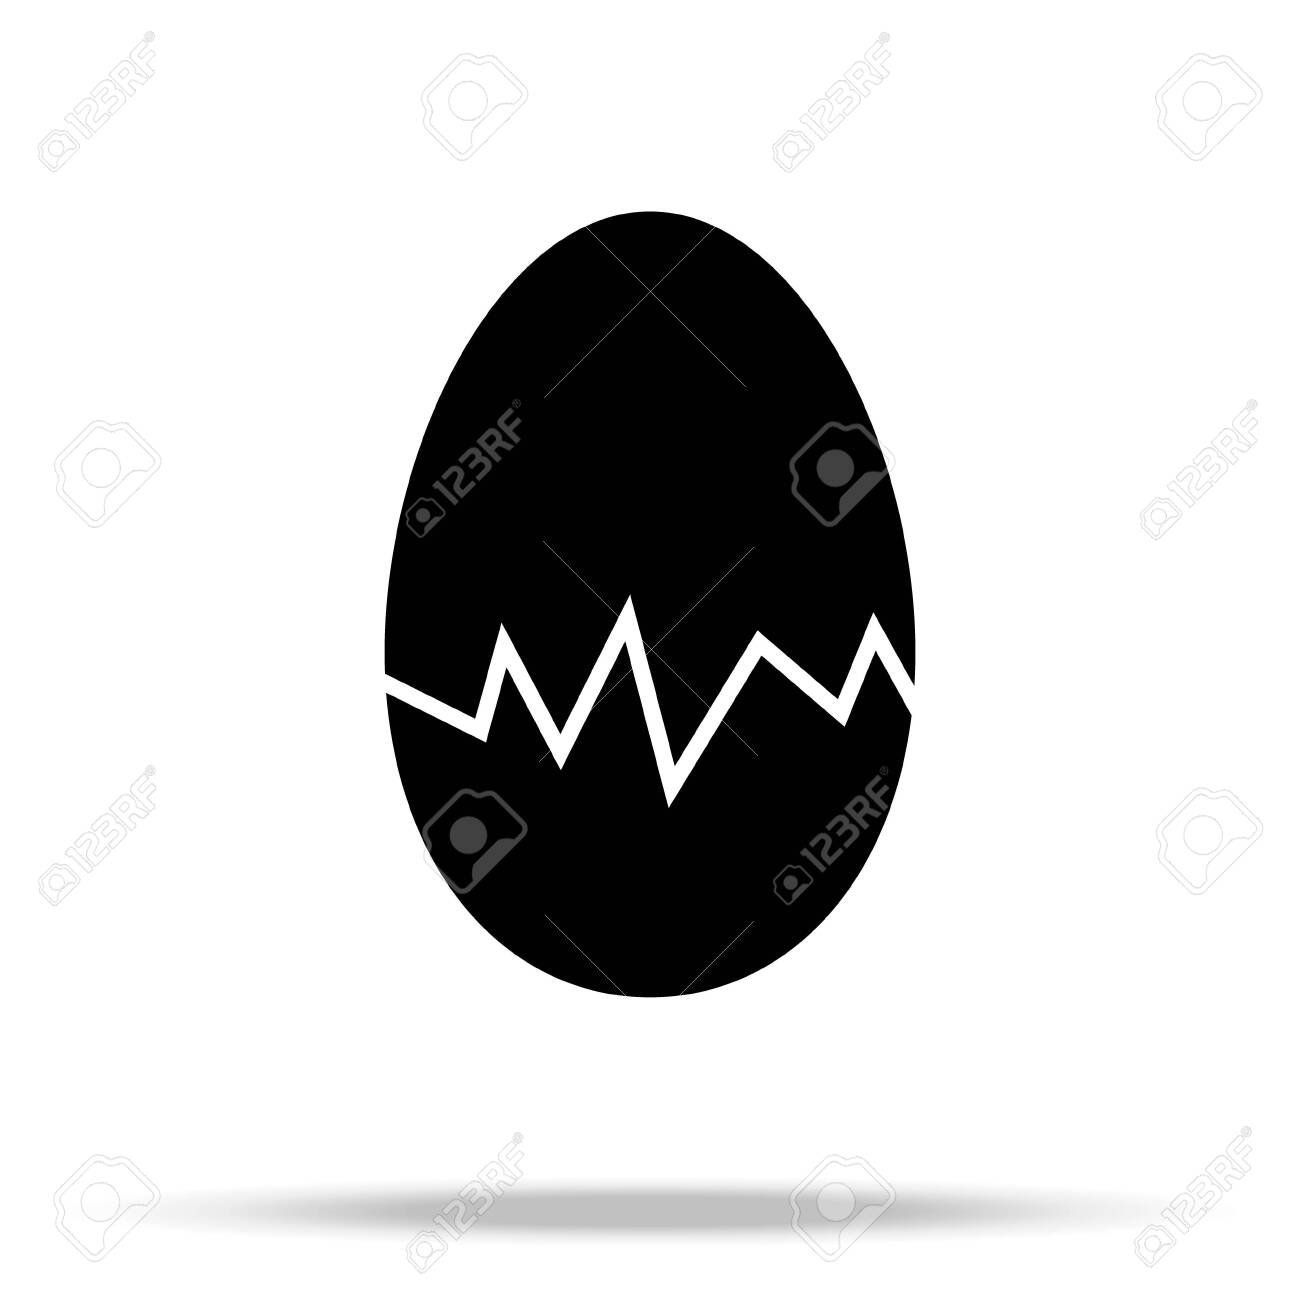 egg icon vector, solid illustration, pictogram isolated on white - 128952788